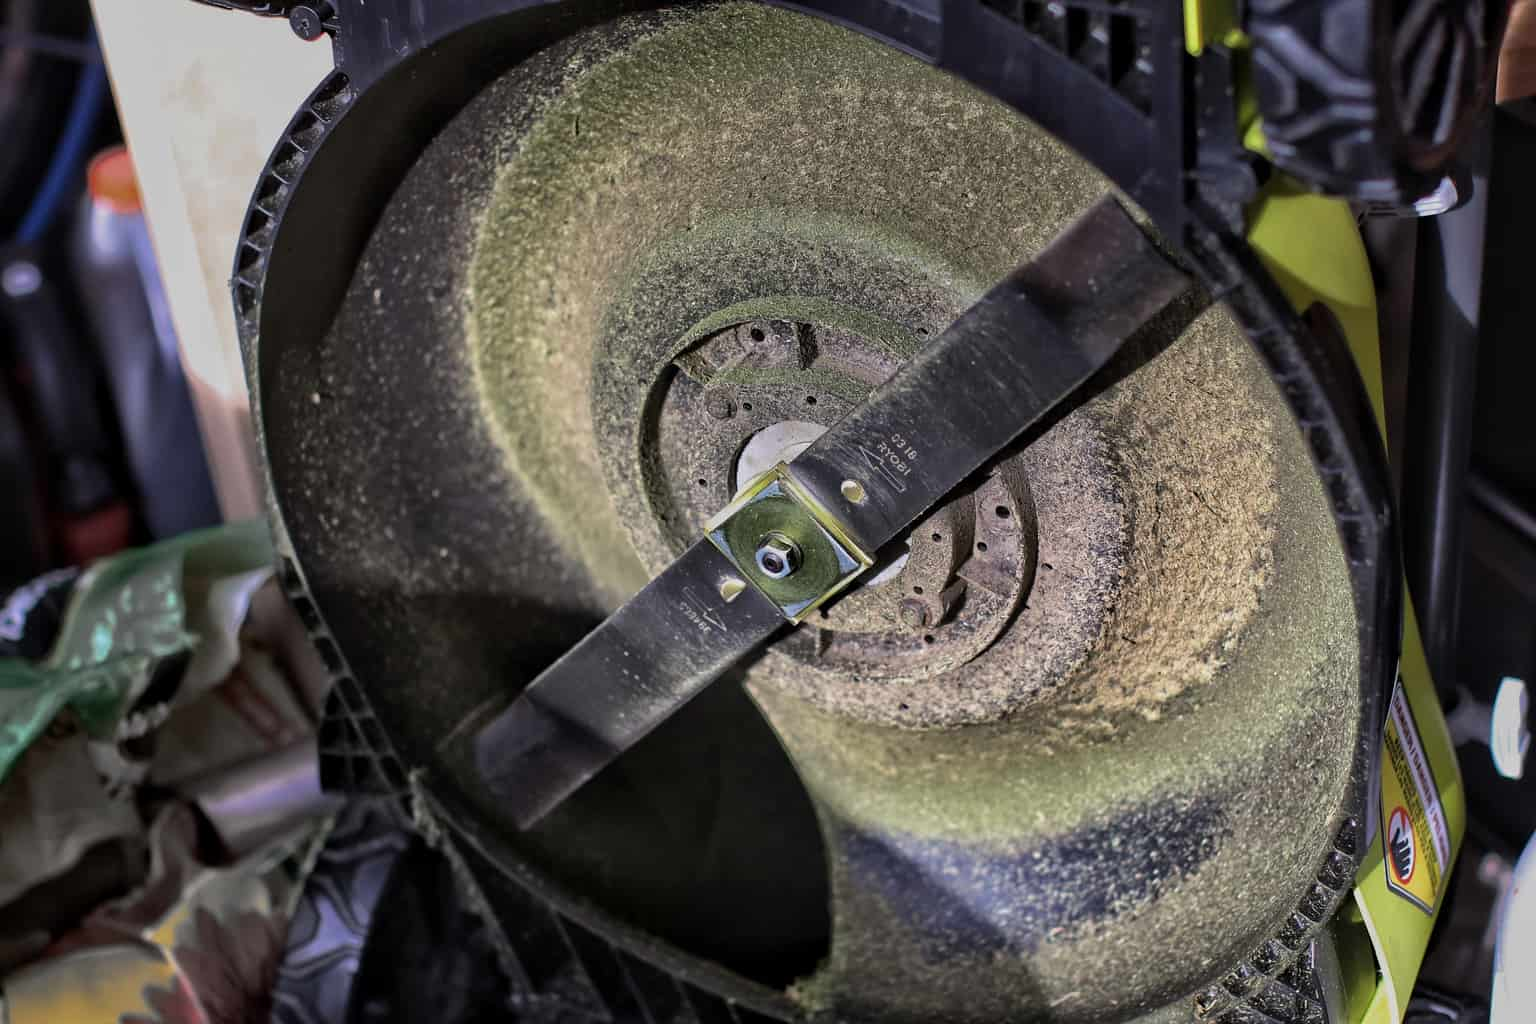 A close up of the blade of a lawn mower